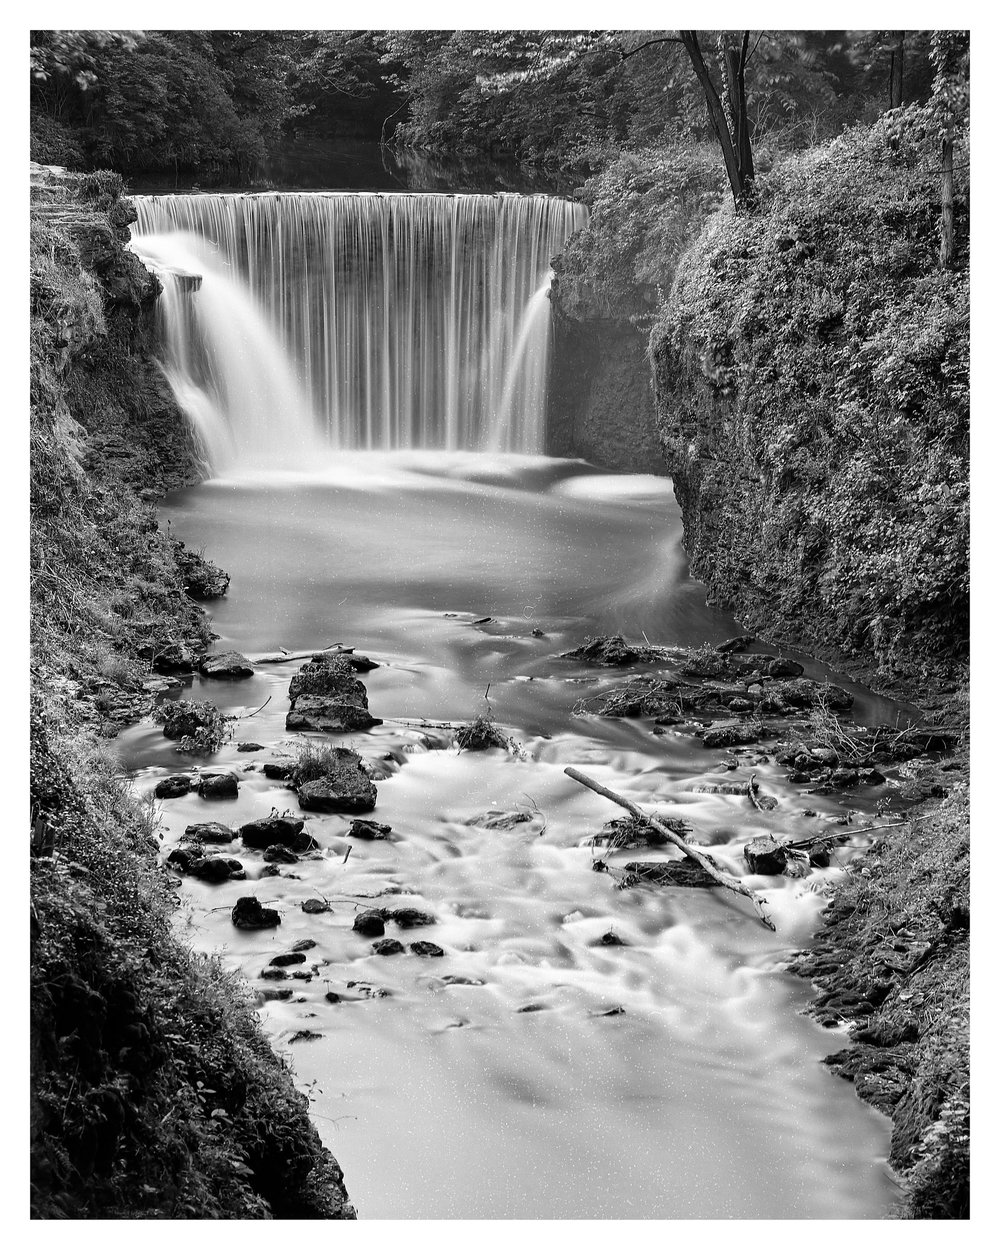 Mamiya RB67 ProS w/90mm lens on Ilford PanF 50 @ f/16, 2 minutes with a 4-stop ND filter